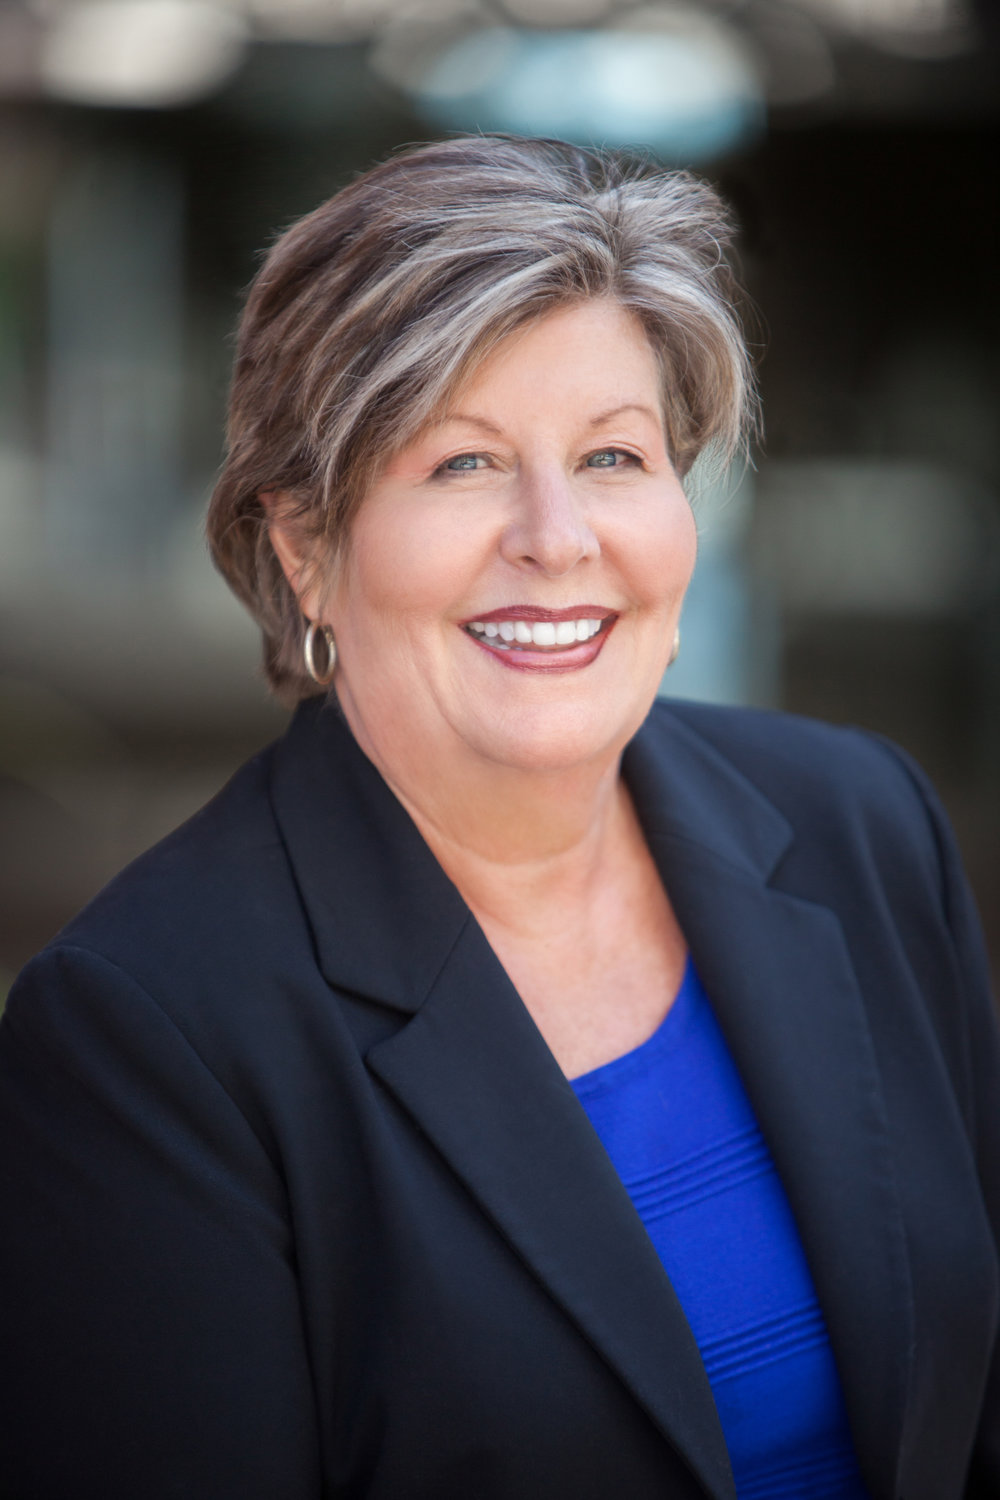 Merrill Lynch financial advisors and directors professional corporate headshot and team photography for women.